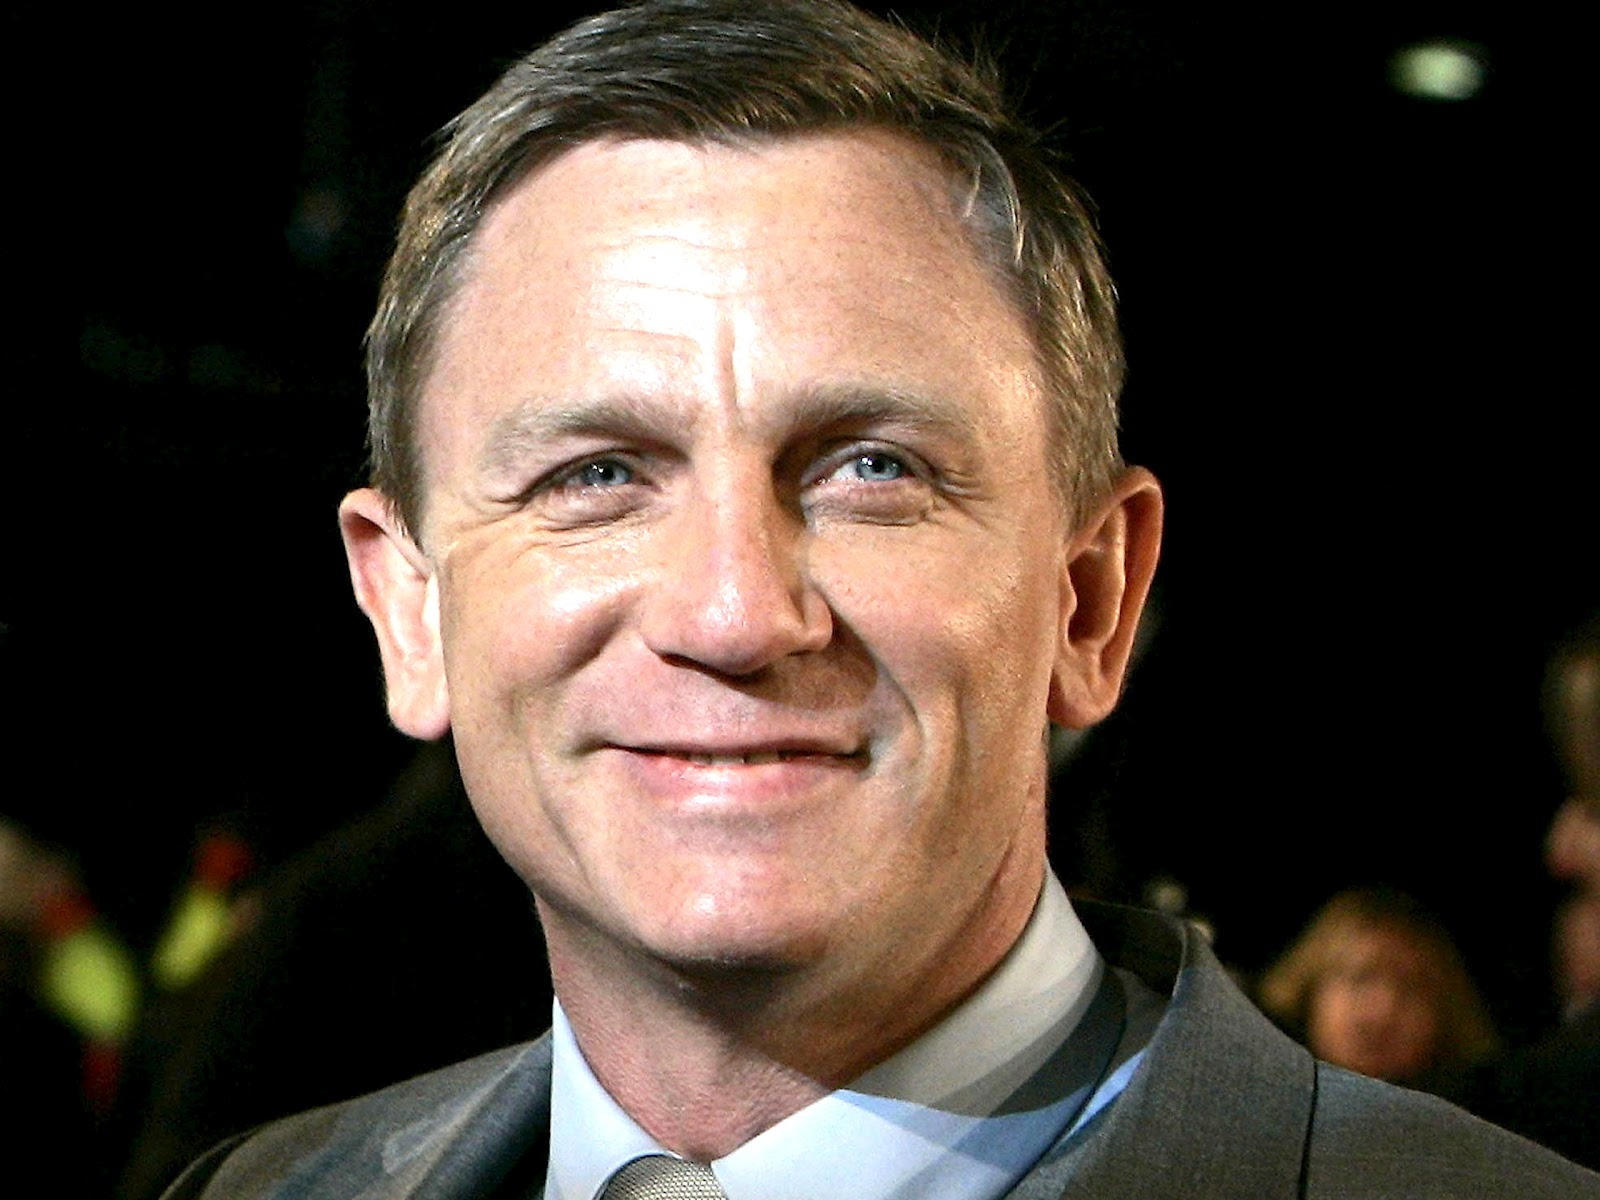 Daniel Craig England Best Actor Profile And Photos 2012